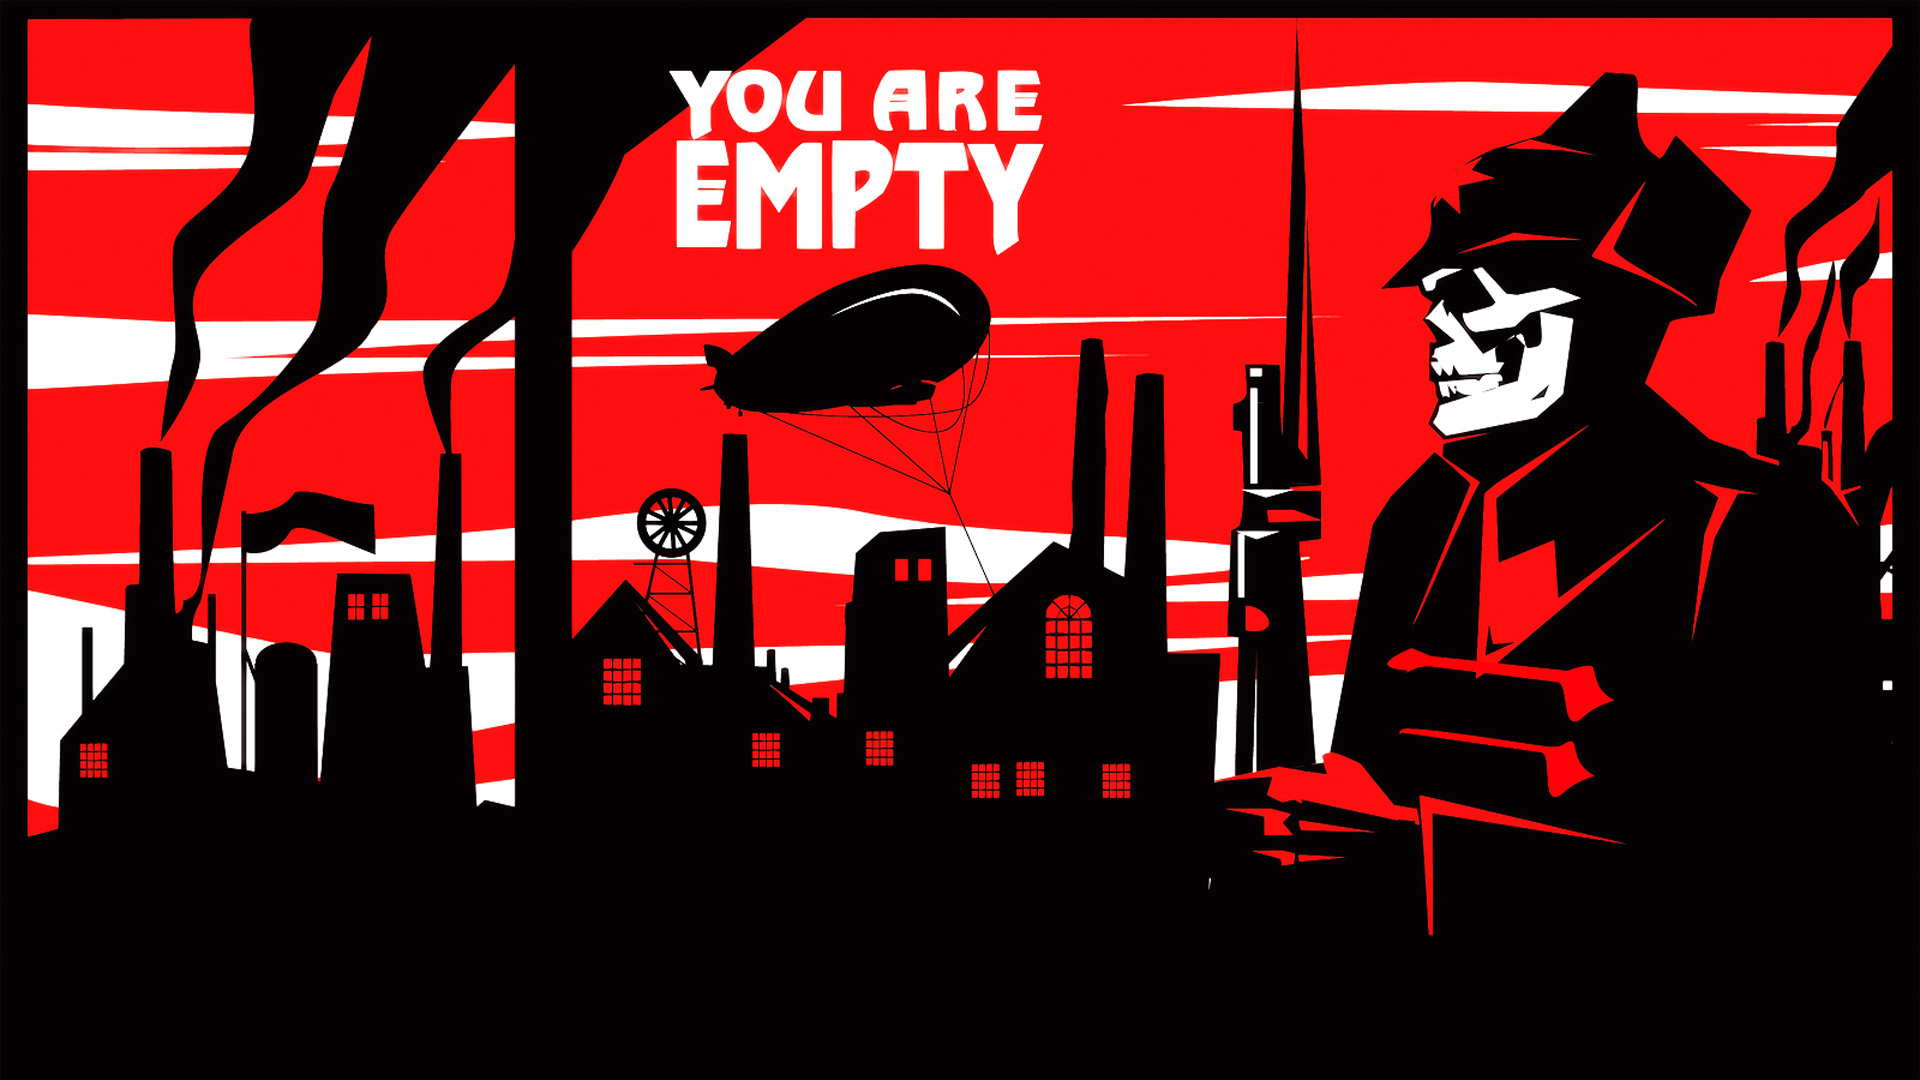 Free You Are Empty Wallpaper in 1920x1080